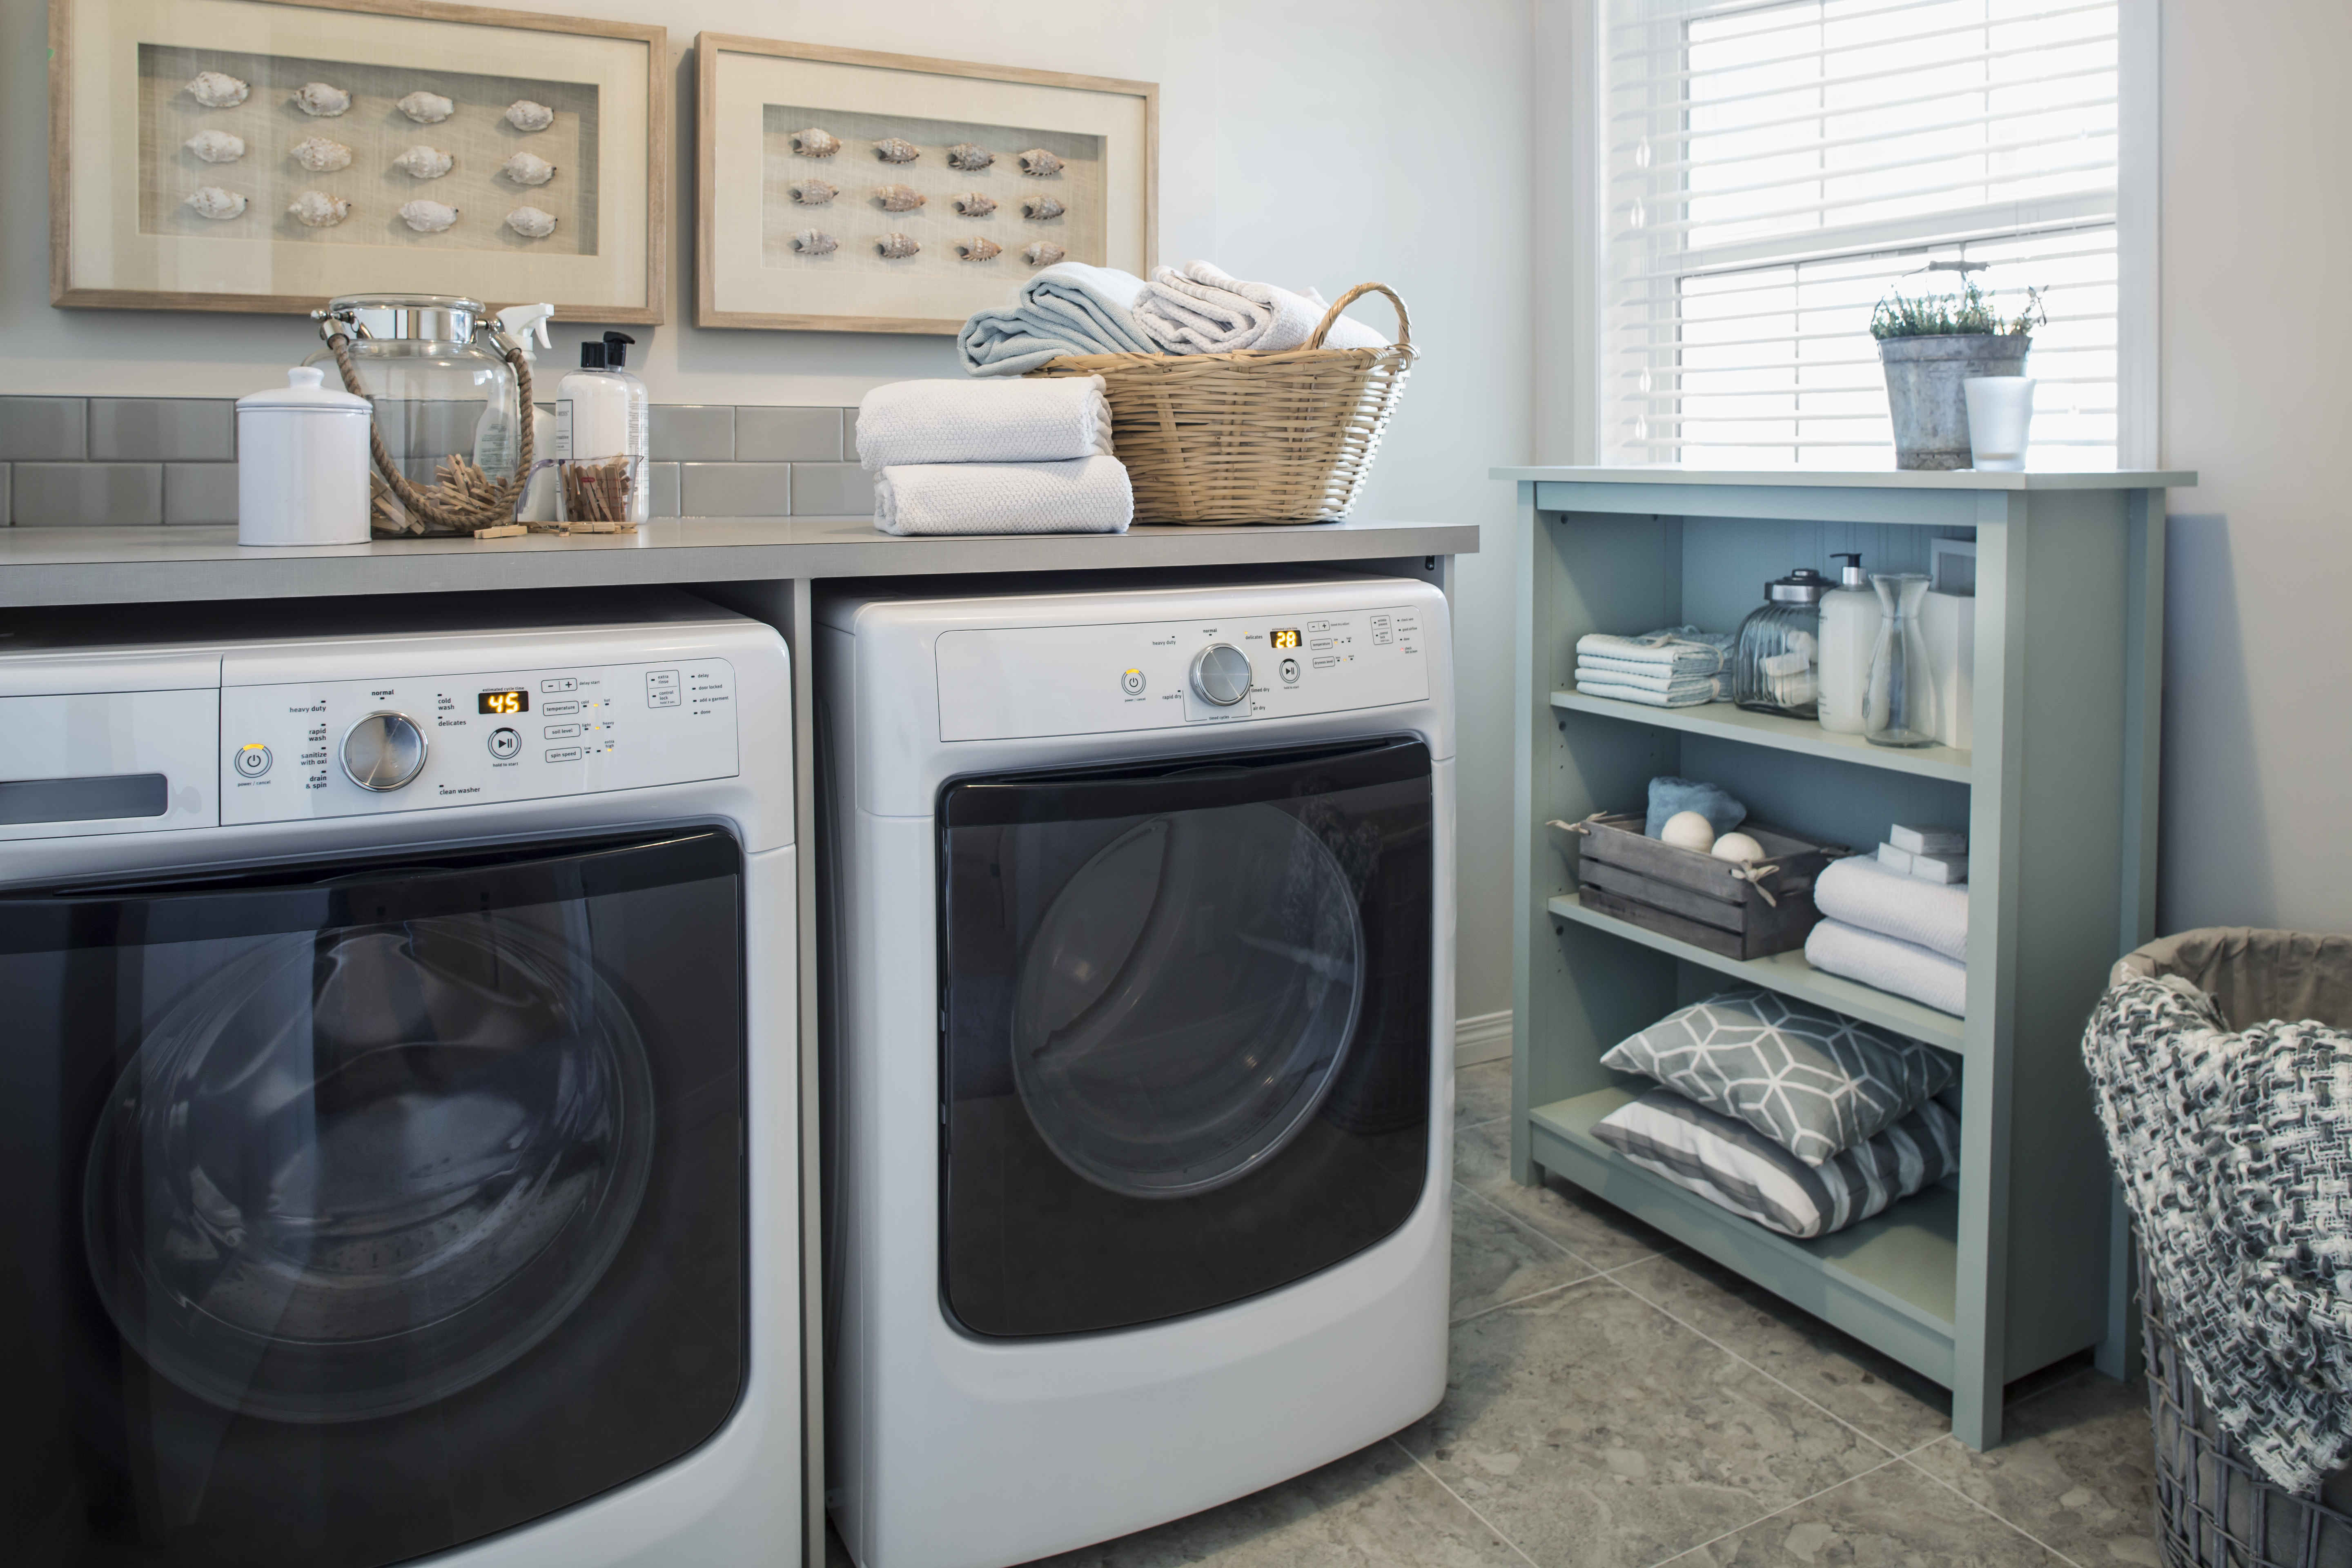 How to Seal a Gas Line on a Dryer | Home Guides | SF Gate